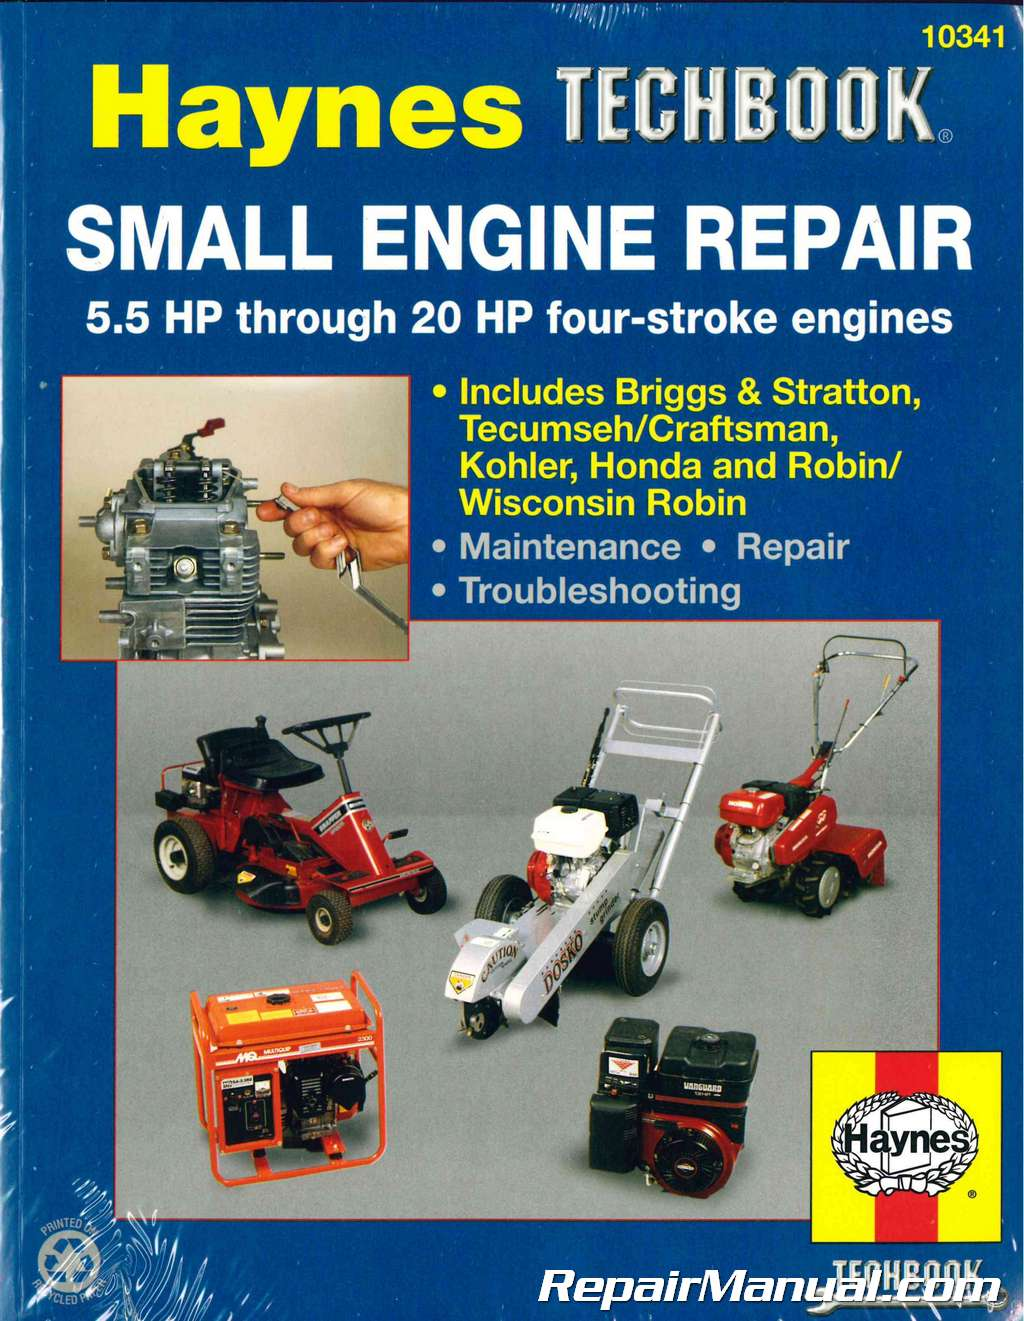 haynes small engine repair haynes techbook 5 5 hp through 20 hp rh repairmanual com Mygmlink Owner's Manual Haynes Manual Monte Carlo Back